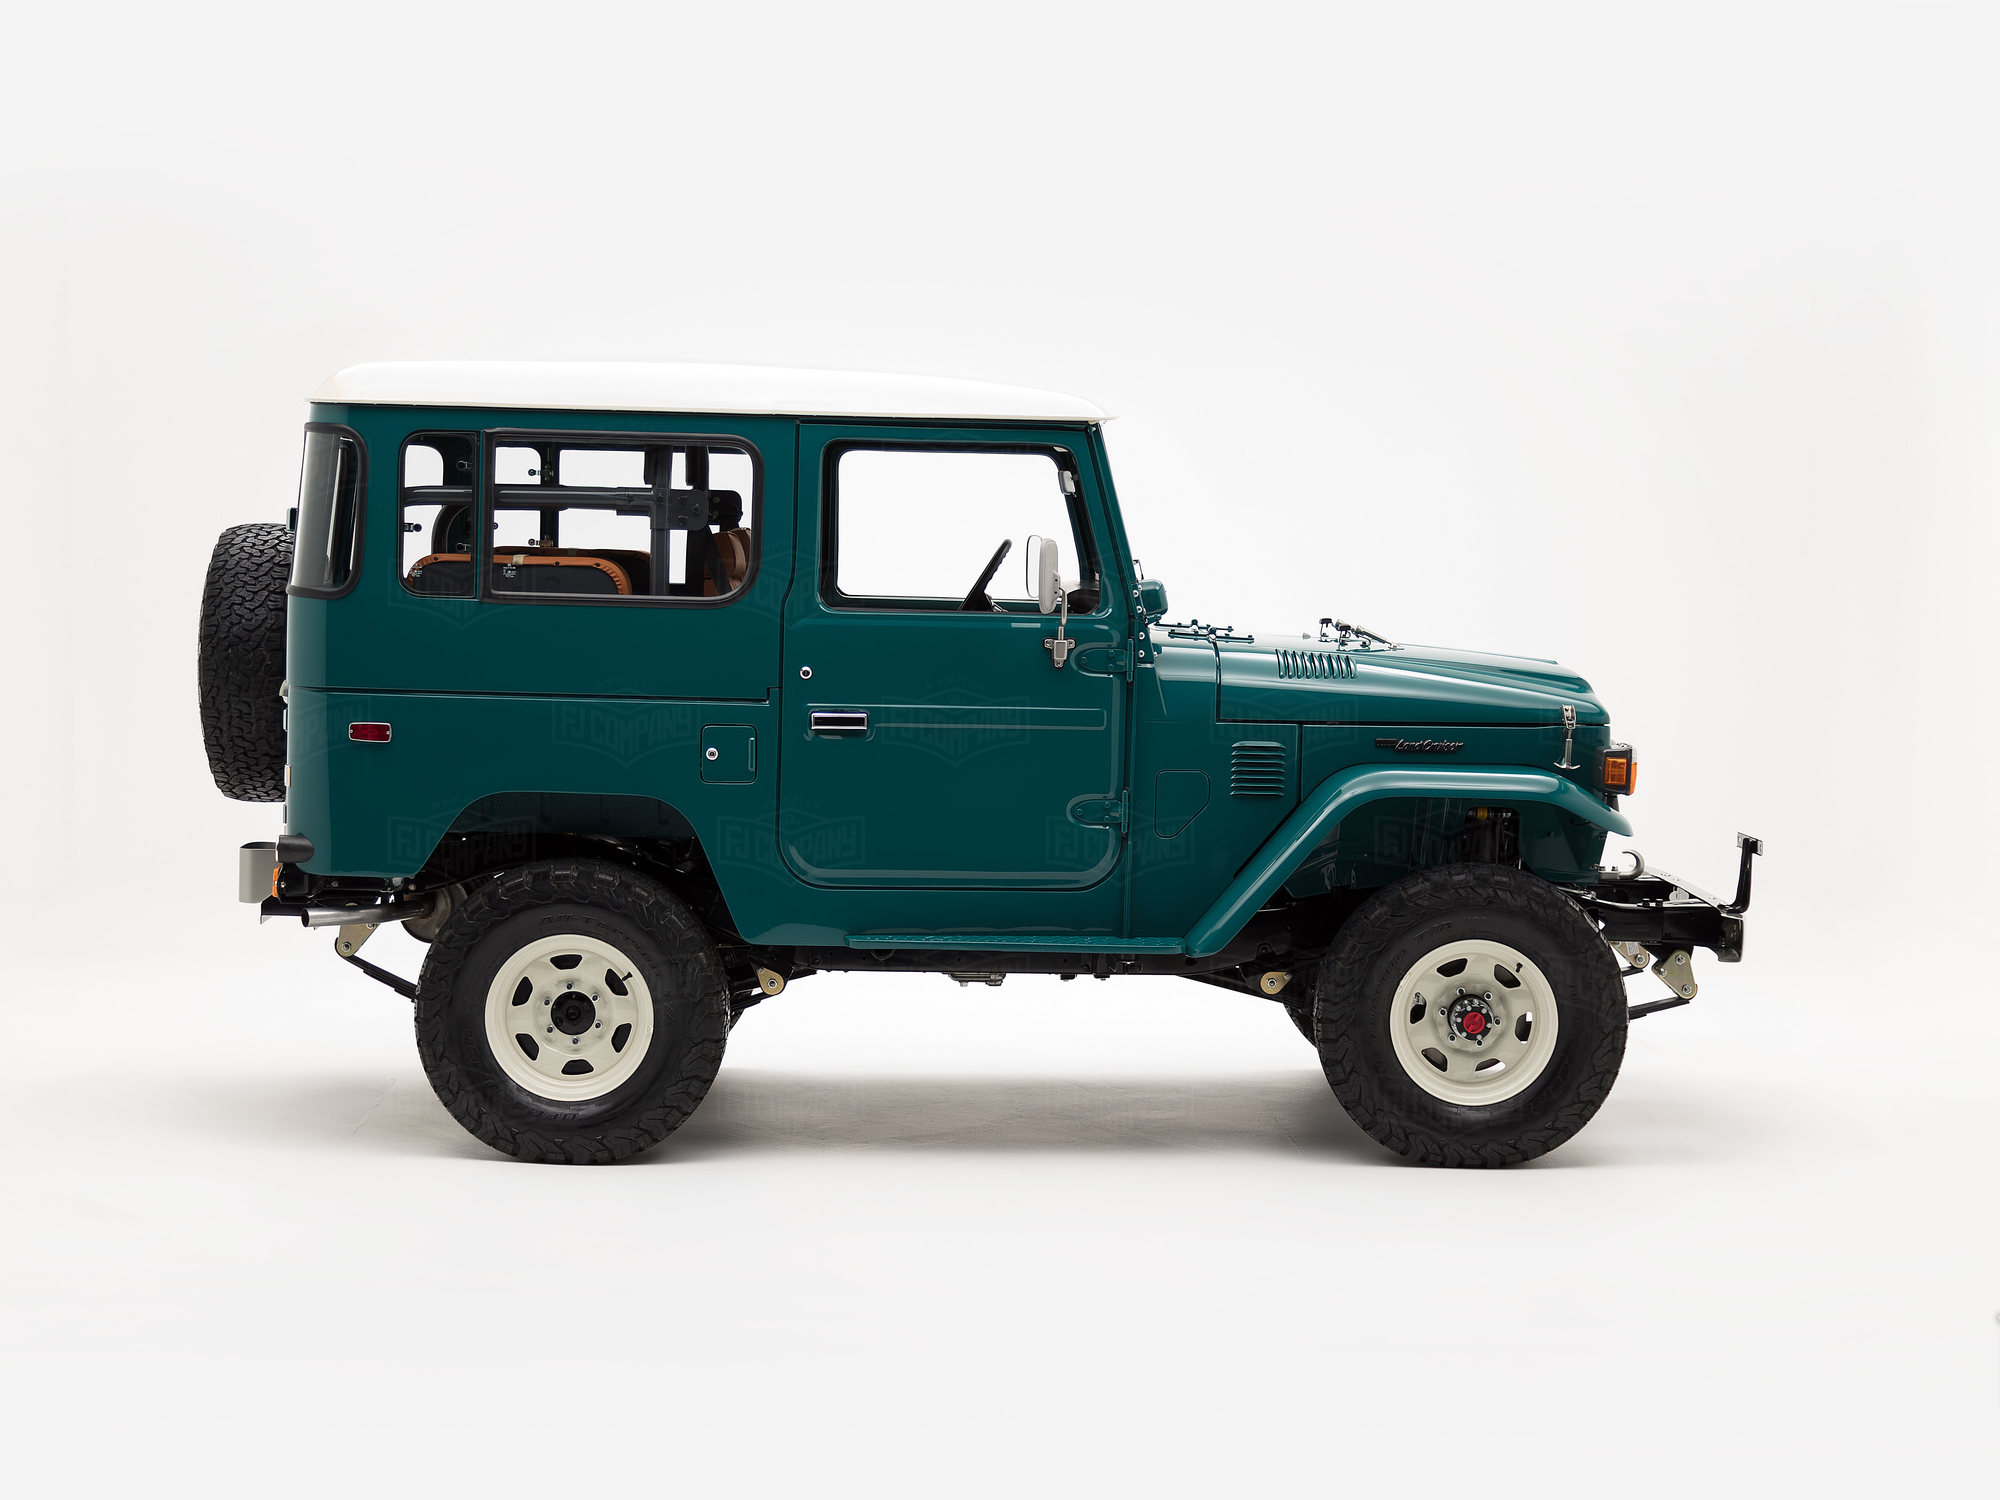 A Classic FJ40 ready for adventure.